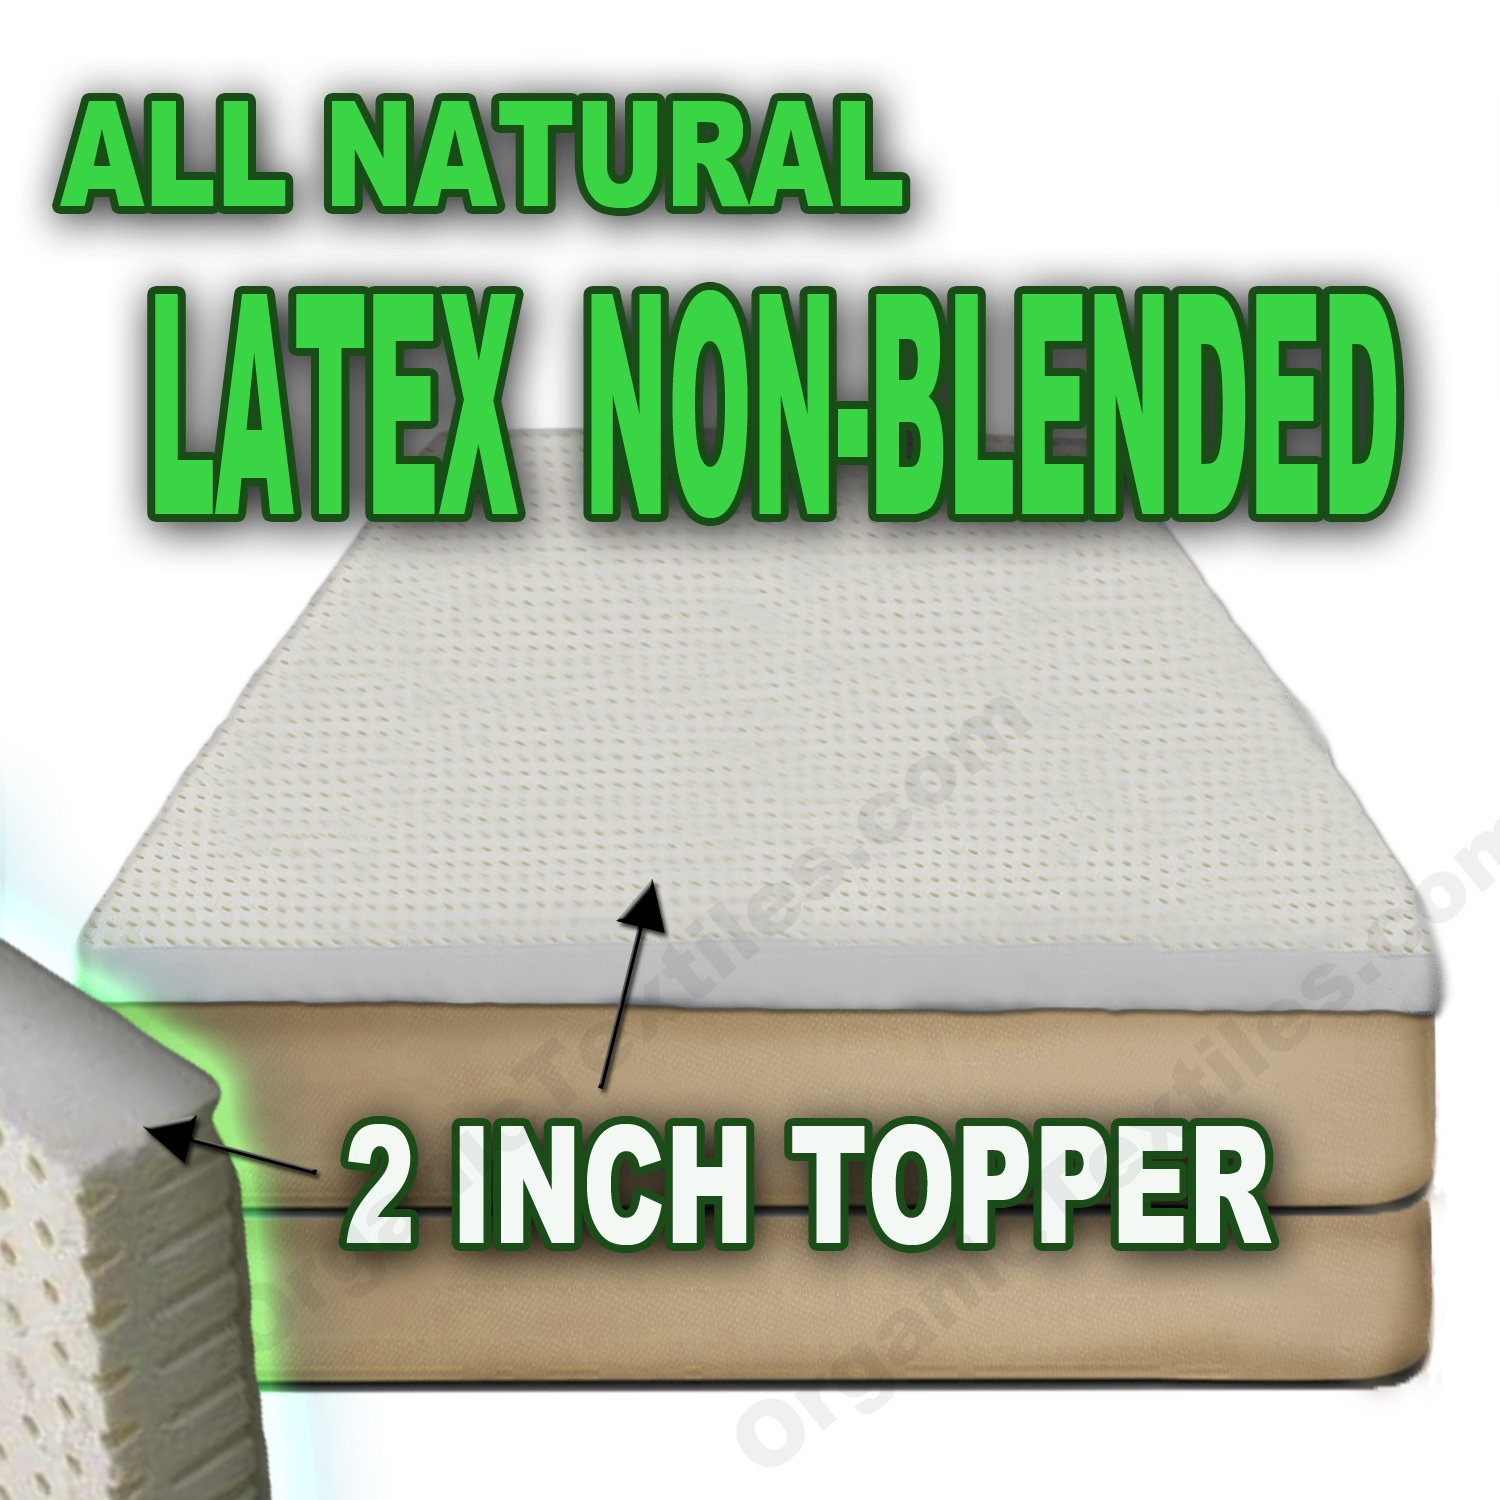 Amazon All Natural Latex Non Blended Mattress Topper with